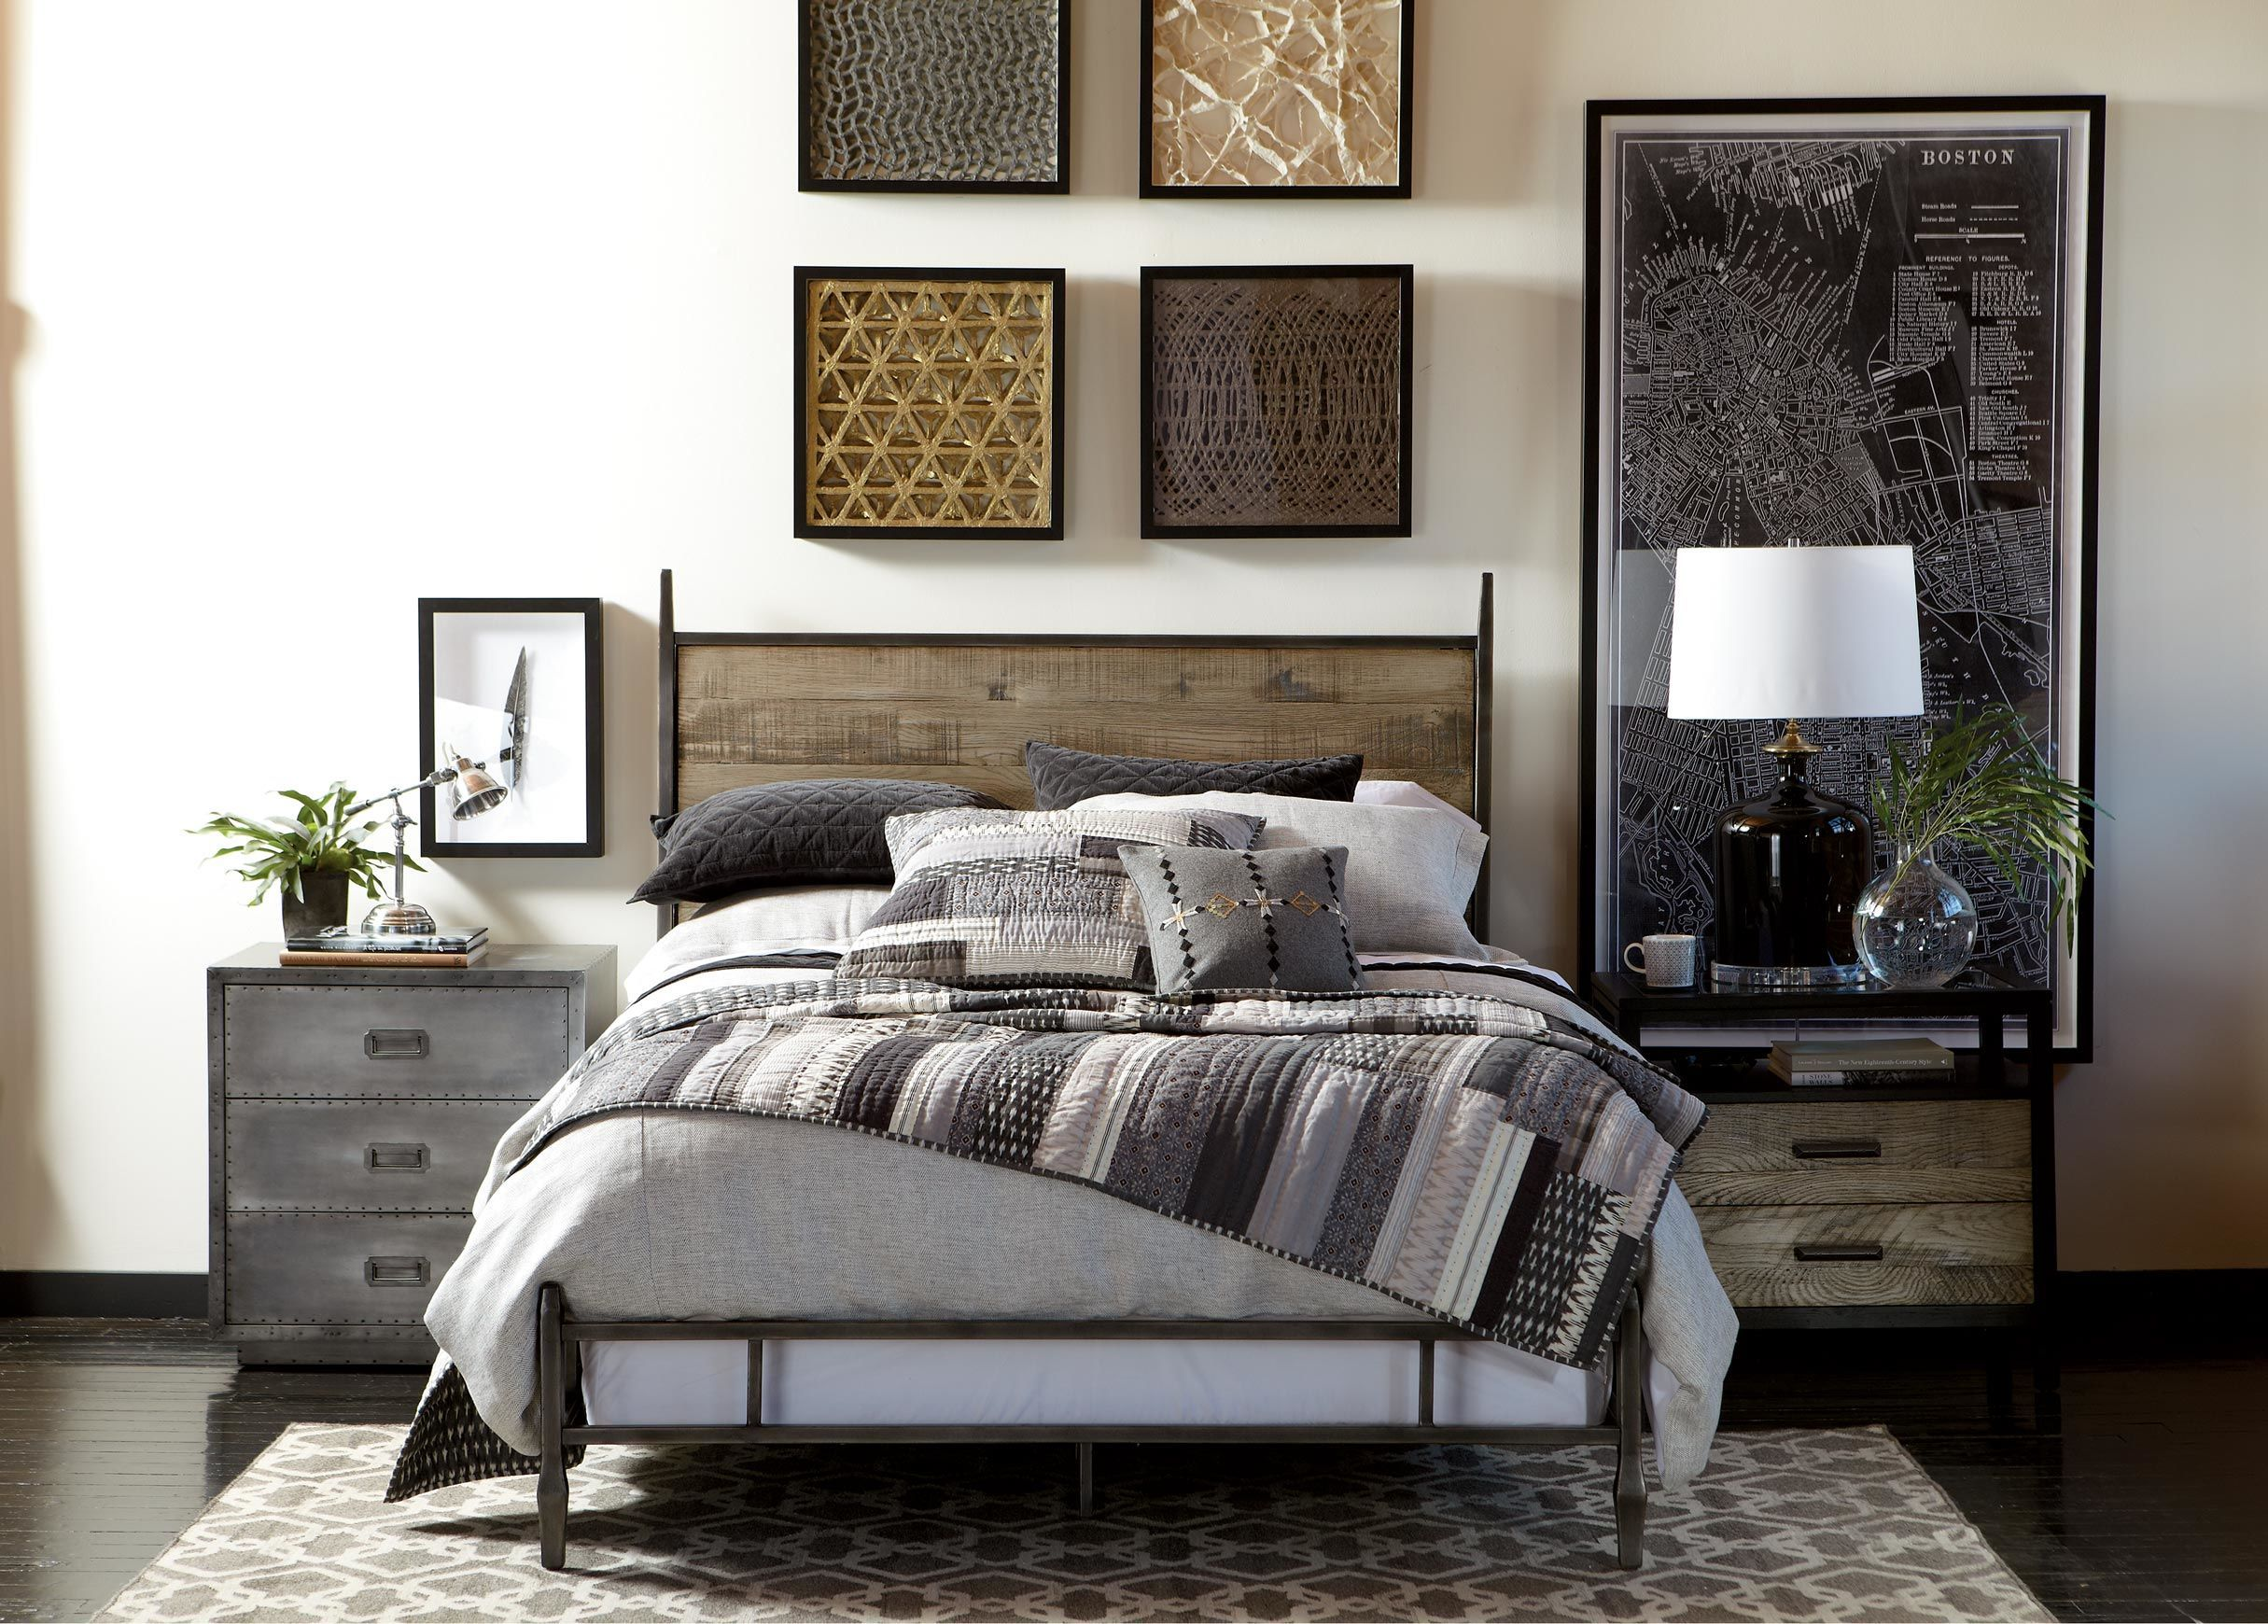 lincoln bed ethan allen us brooklyn pinterest bedrooms. Black Bedroom Furniture Sets. Home Design Ideas